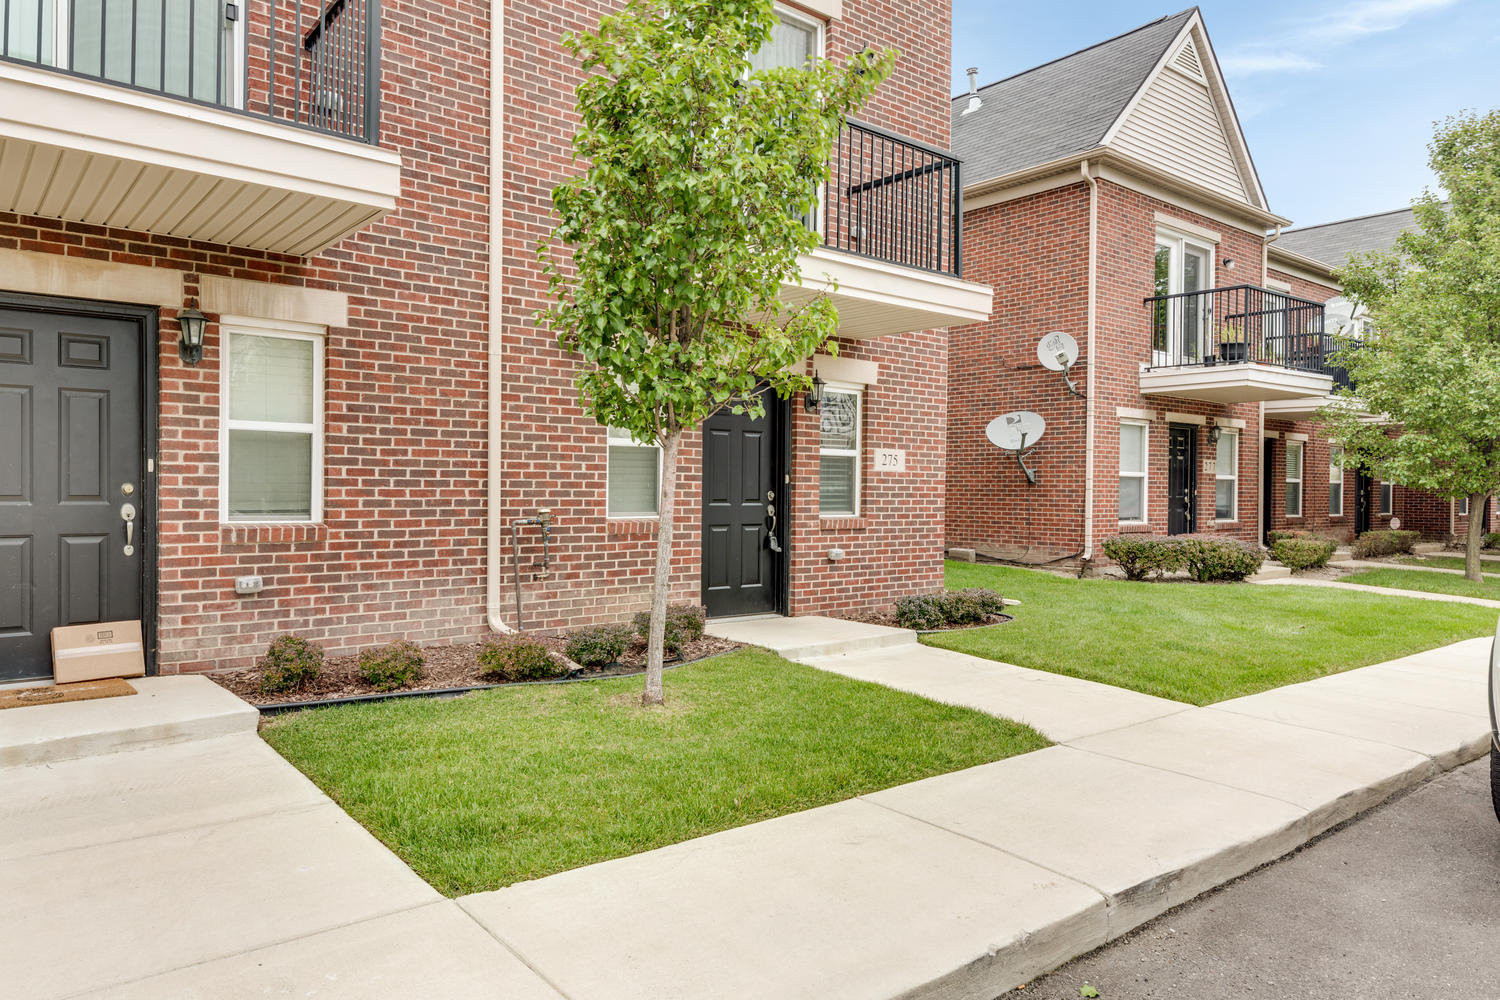 liz-in-detroit-neighborhood-real-estate-275-e-palmer-st-detroit-020-18-condo-20--